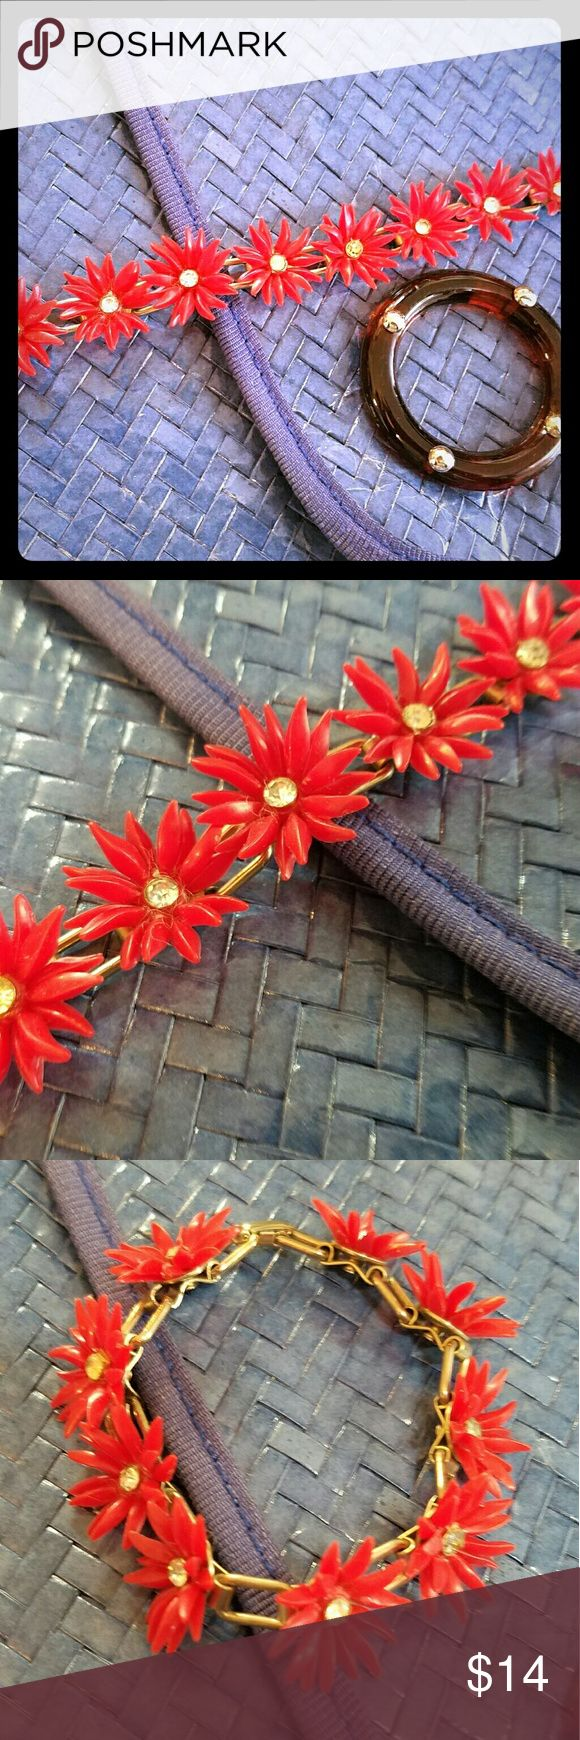 1960's Red Daisy Chain Bracelet So cute!  Daisy Chain Bracelet Circa 1960 Perfect Vintage Condition Vintage Jewelry Bracelets